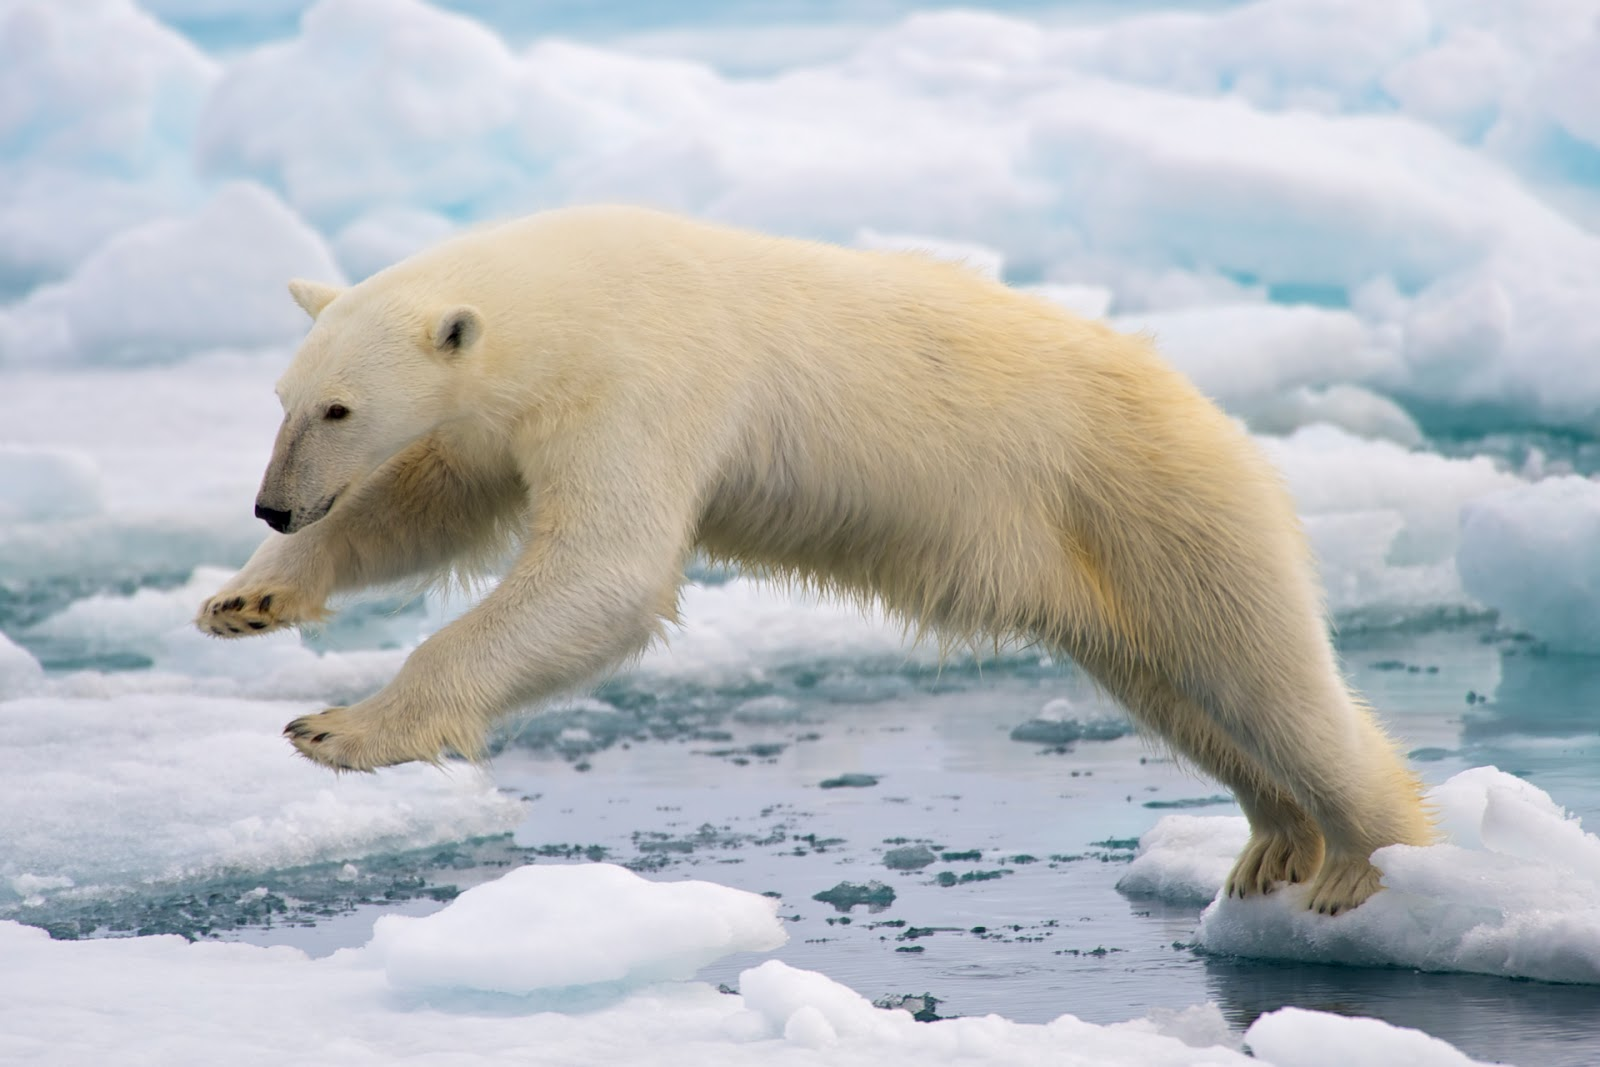 15 Animals That Are In Danger Of Extinction (Unless We Try To Protect Them) - Polar Bear